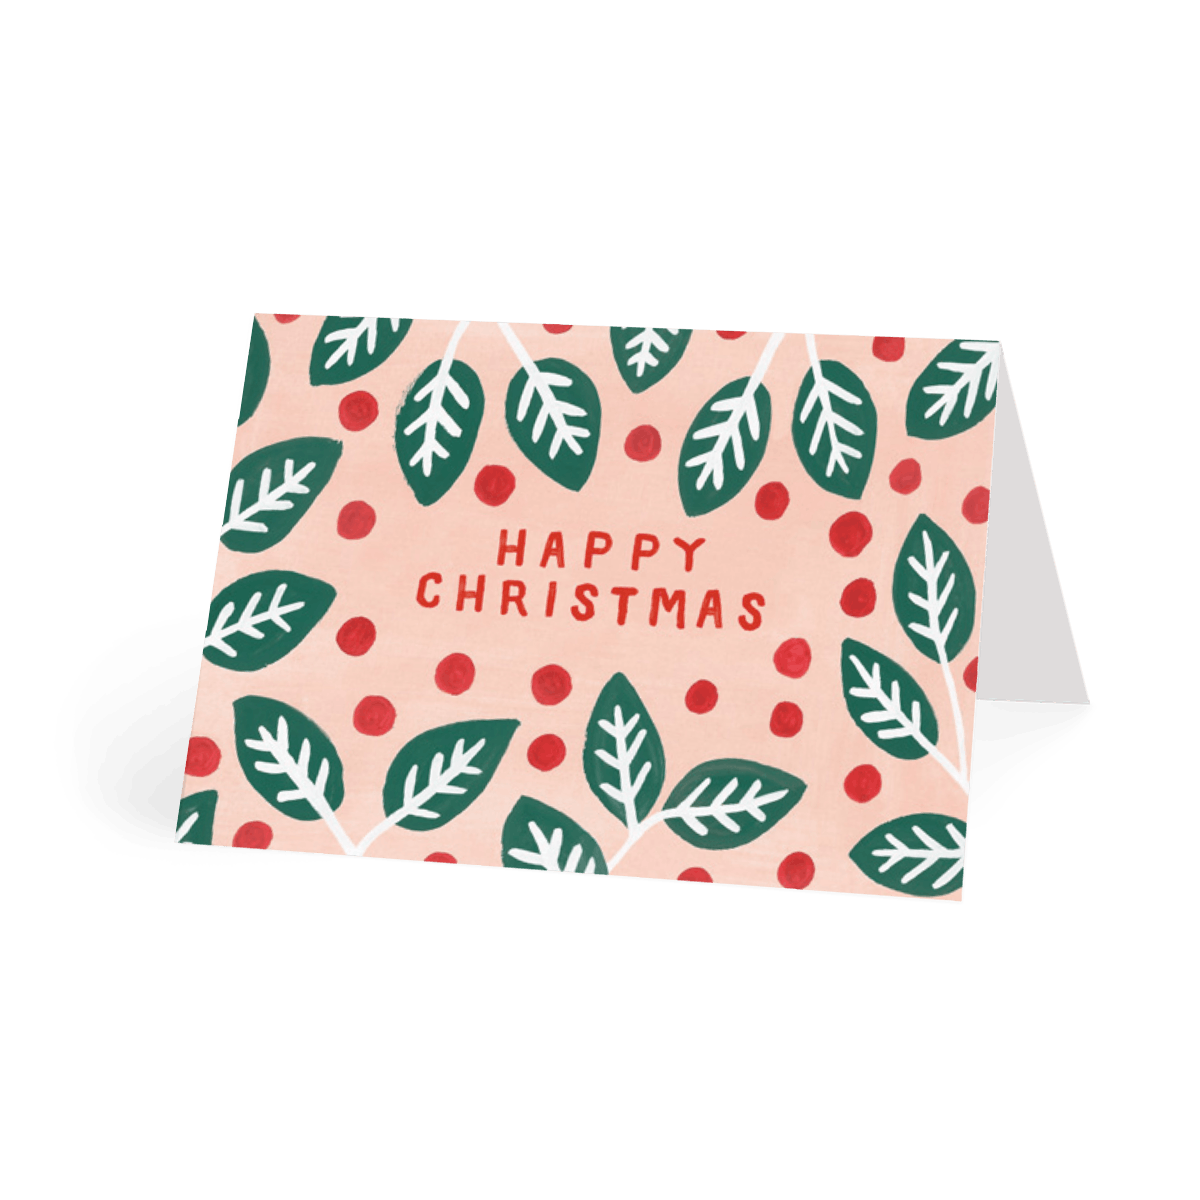 Https%3a%2f%2fwww.papier.com%2fproduct image%2f30080%2f14%2fchristmas holly 7584 front 1537287254.png?ixlib=rb 1.1